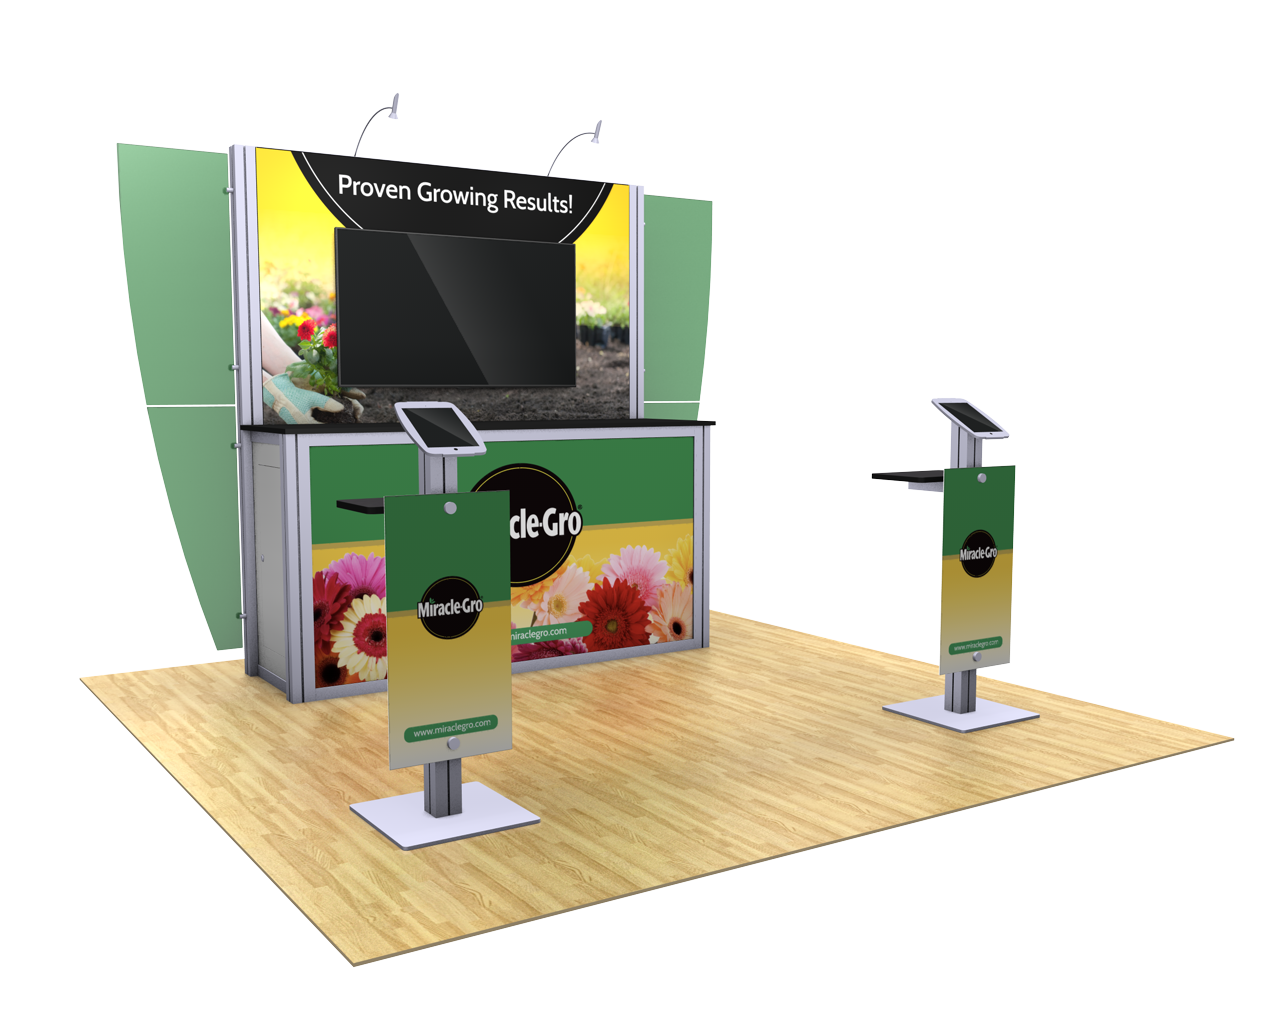 XVline Modular 10x10 Trade Show Display Kit - 10.07